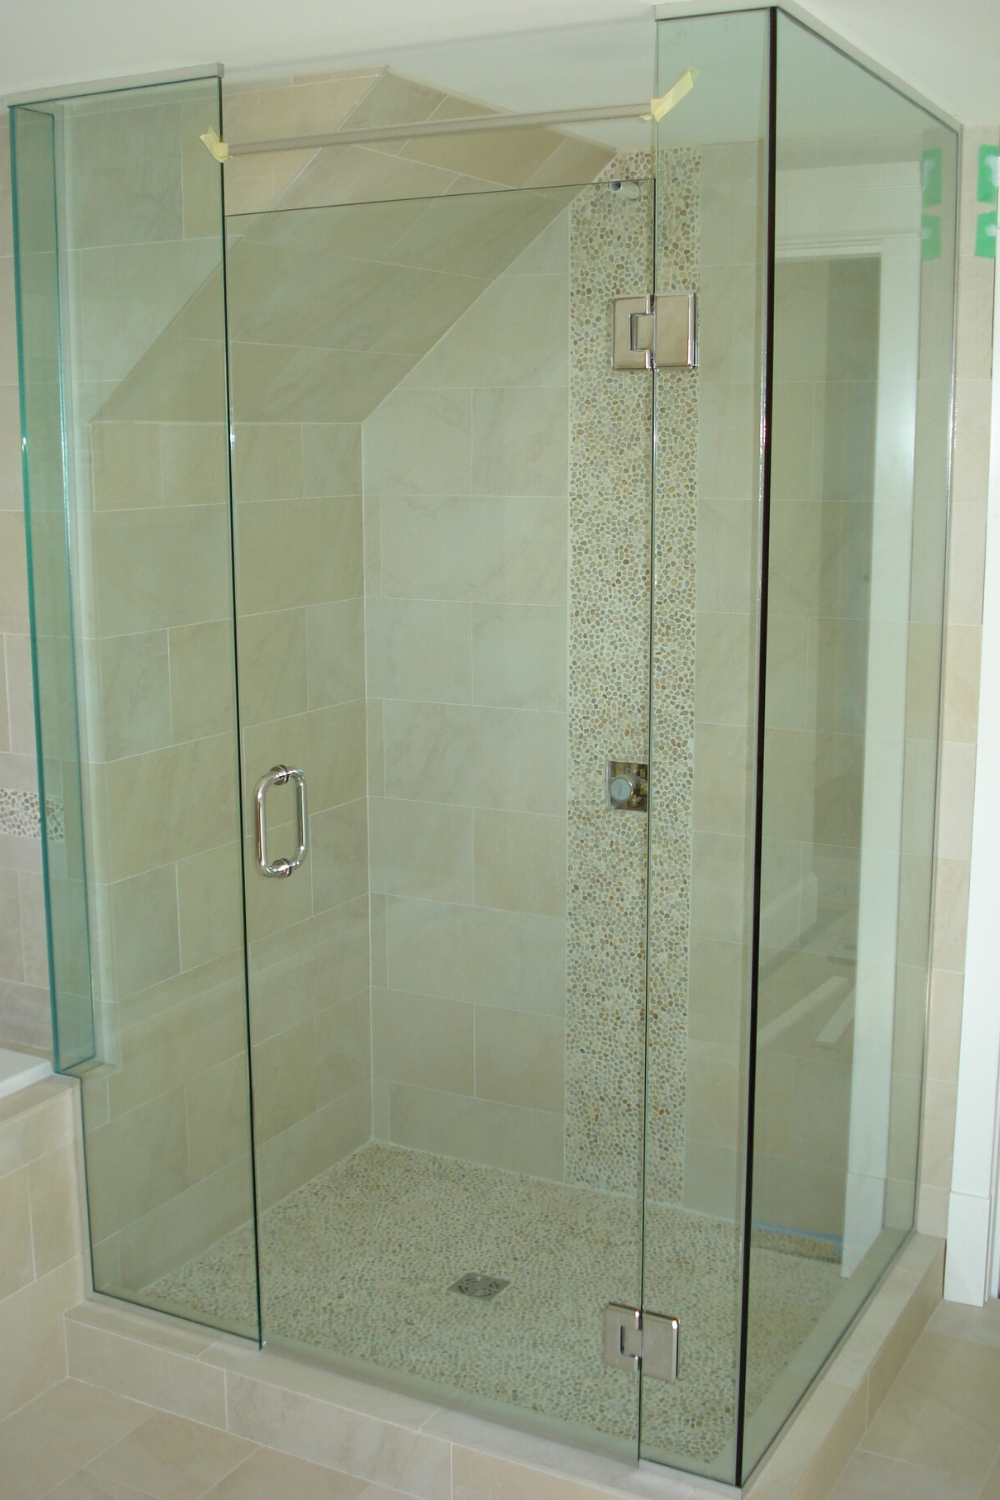 Are You Looking For A Glass Shower Door To Revamp Your Bathroom